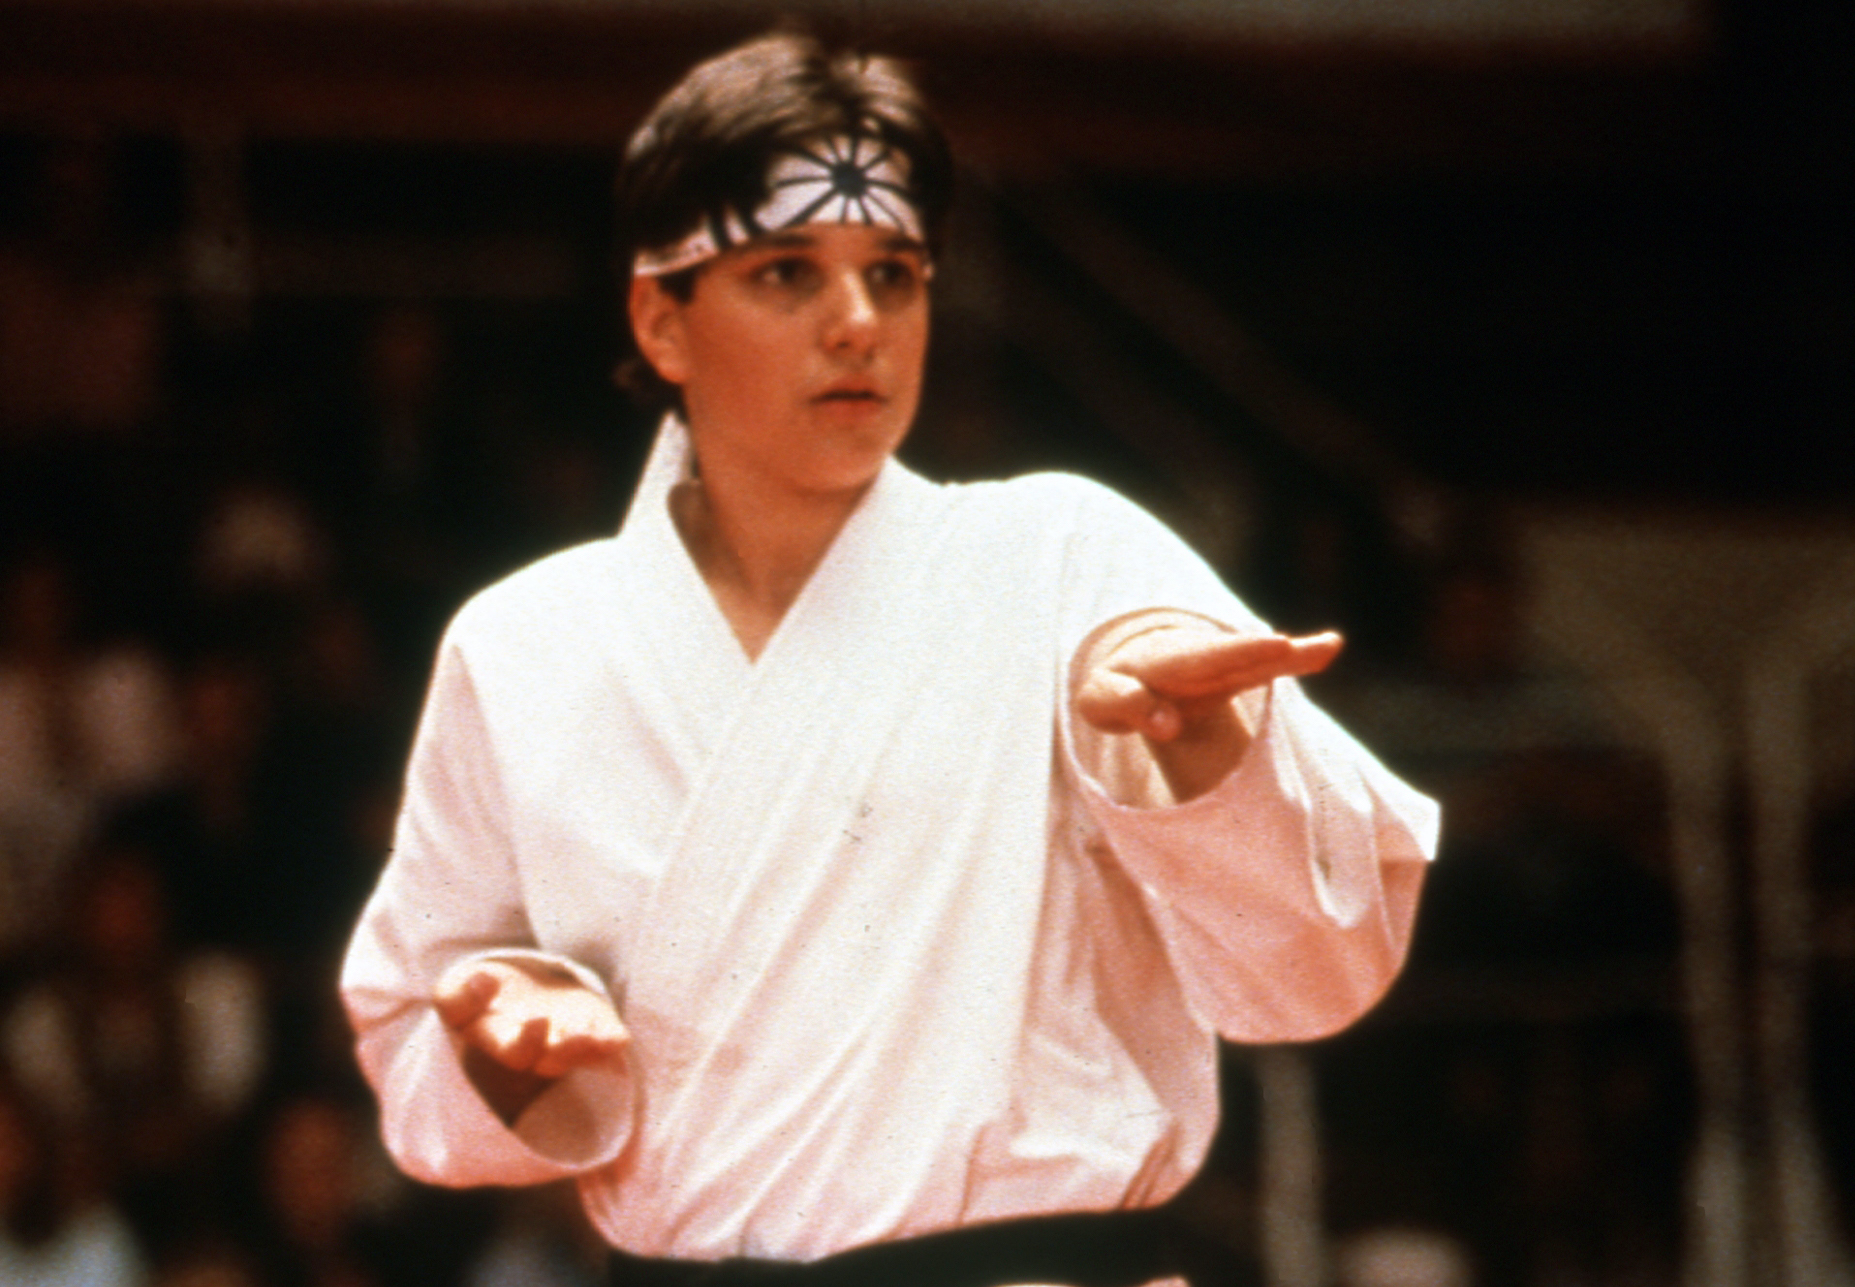 'Cobra Kai' Actor Ralph Macchio Salutes NHL's Washington Capitals Homage